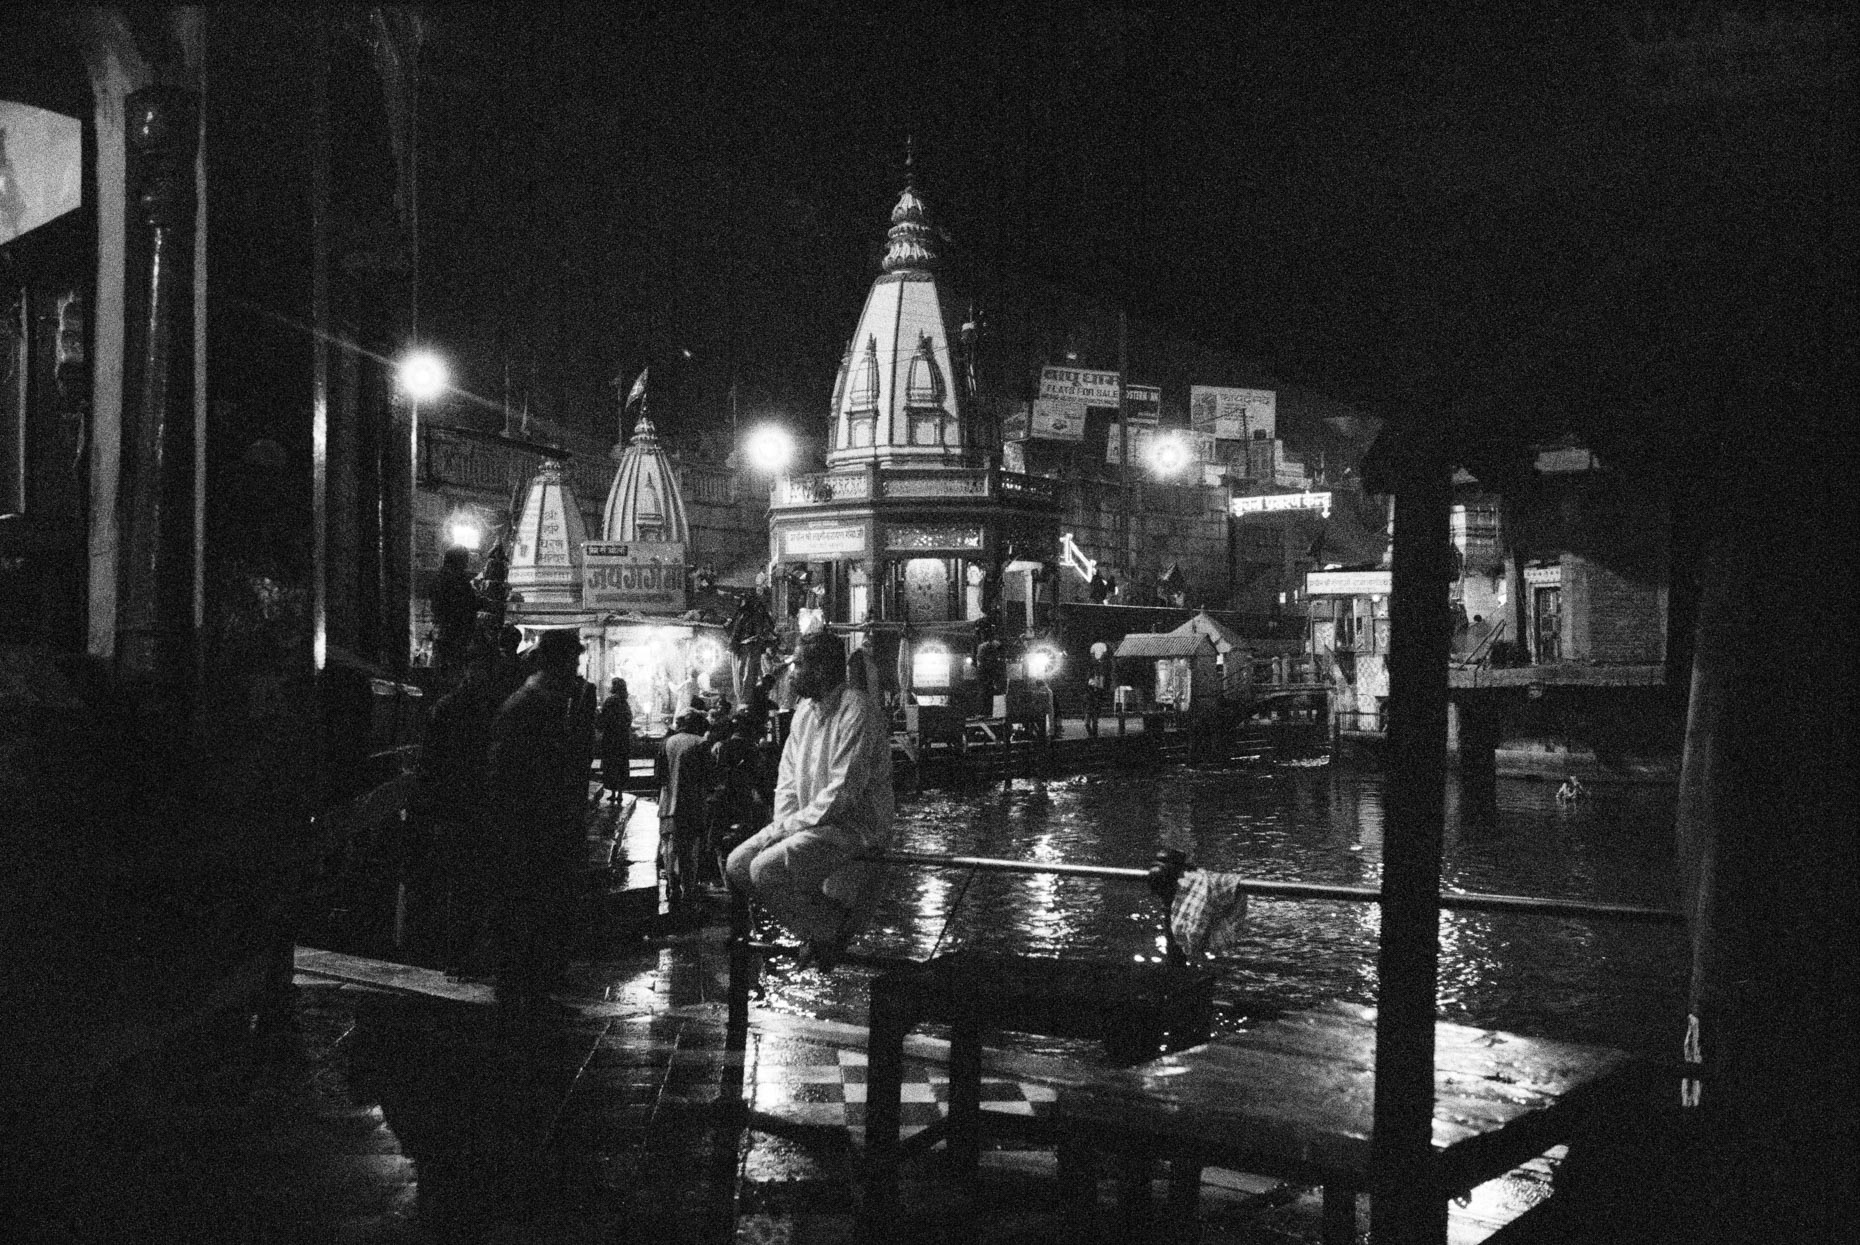 Puja in the Ganga, Haridwar